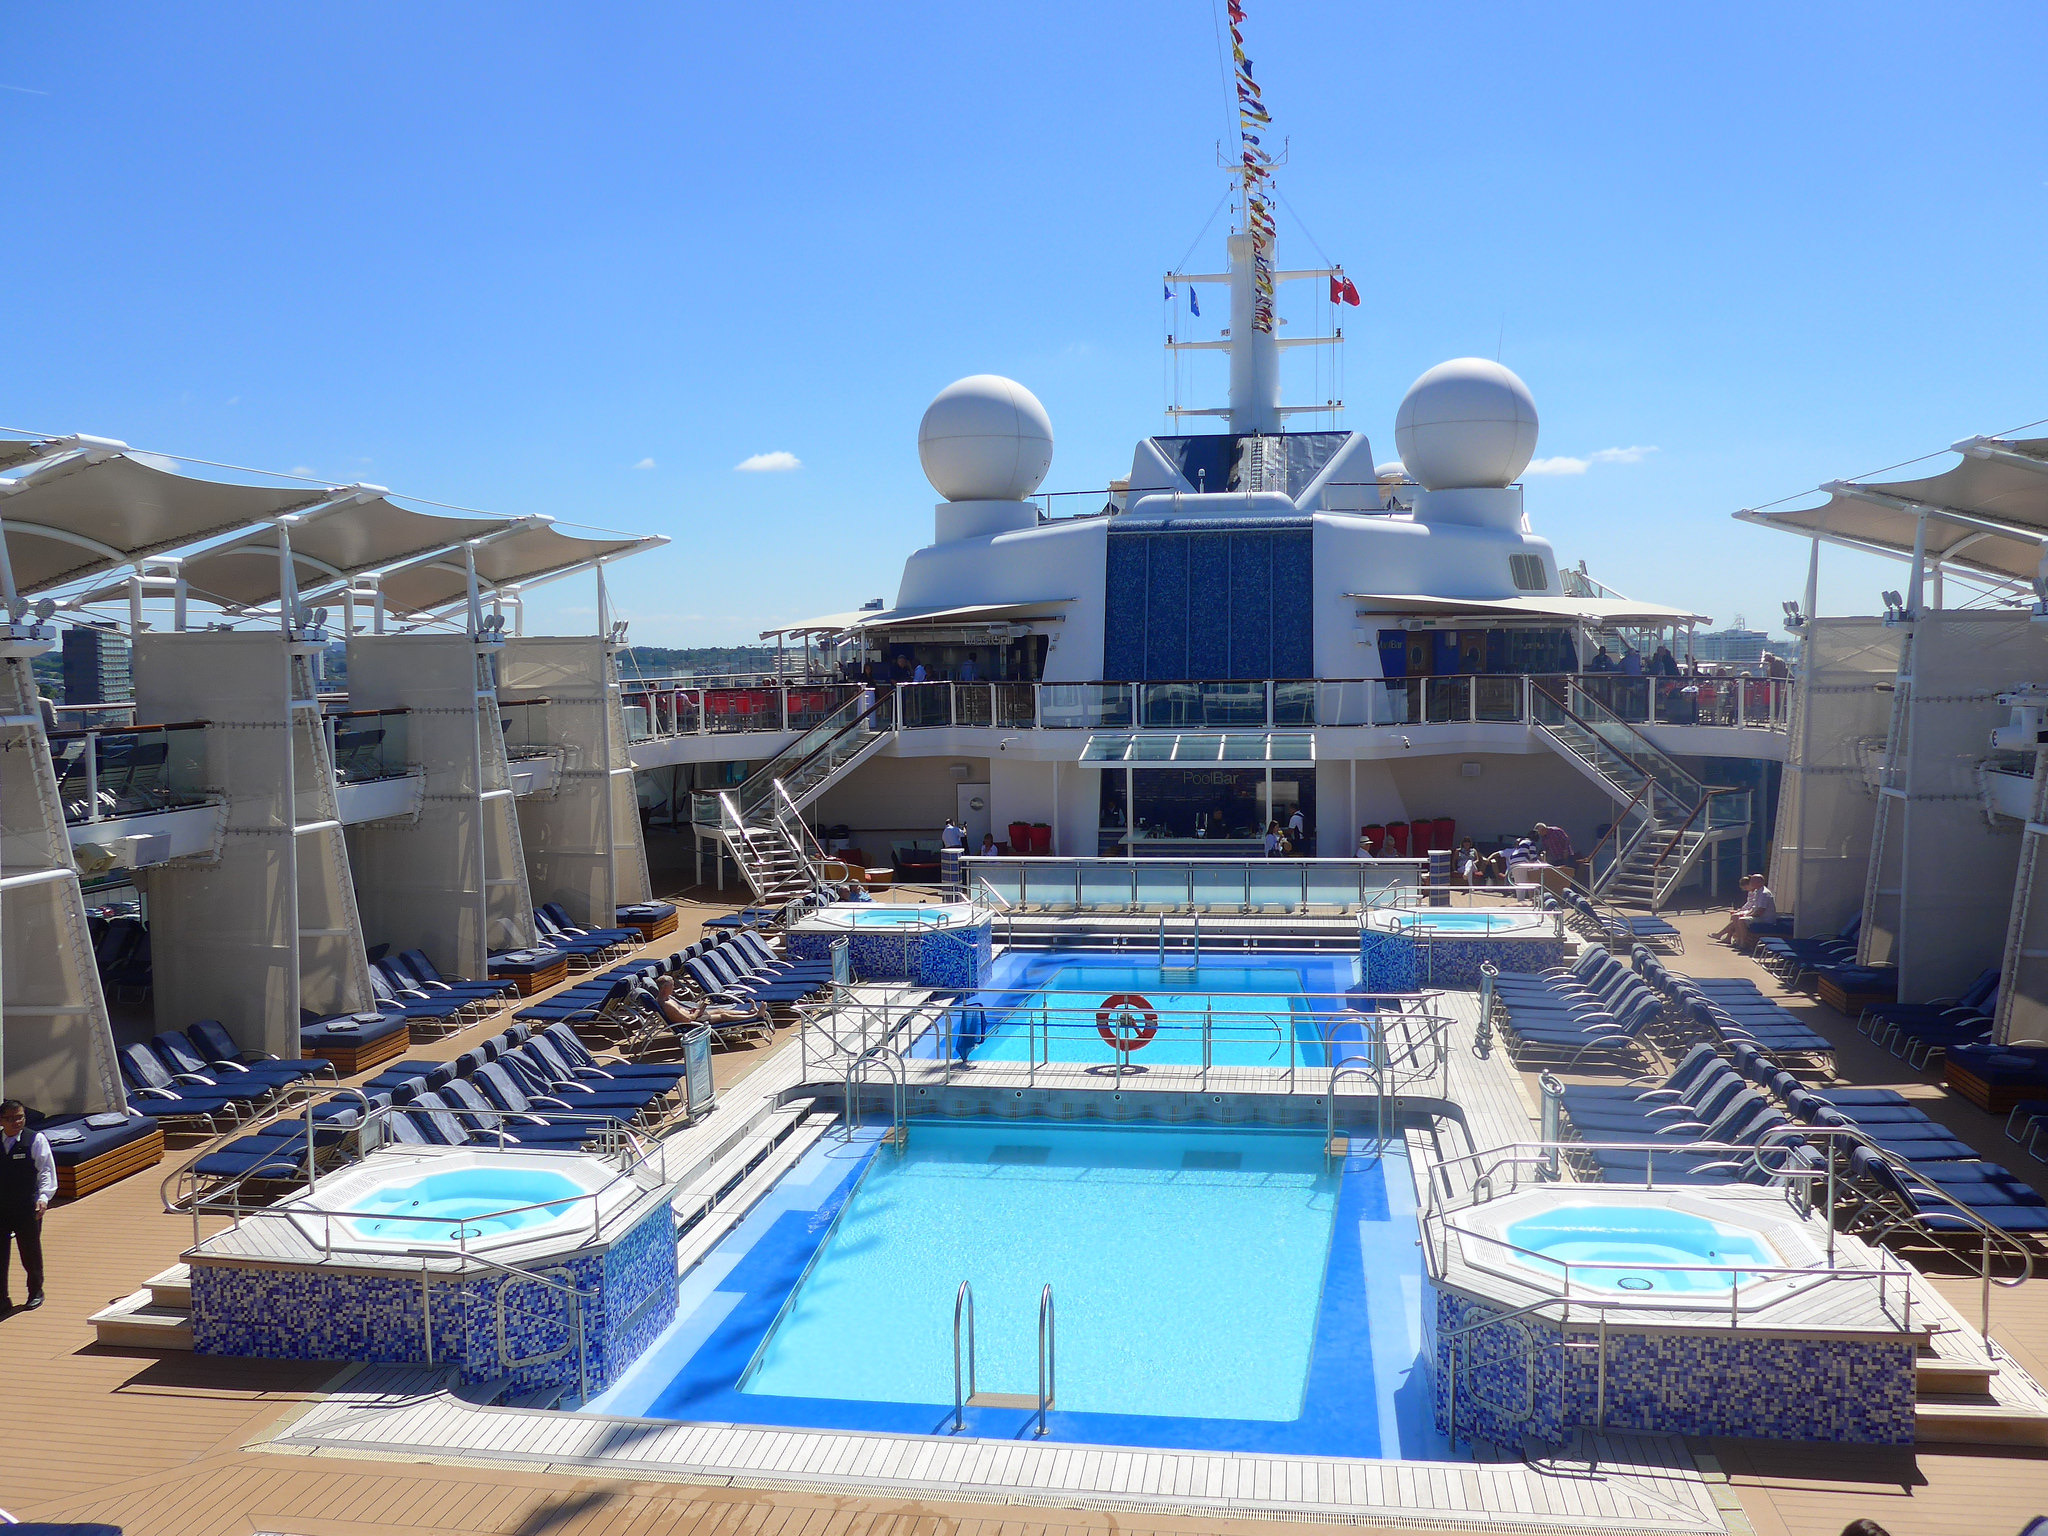 Celebrity Cruises Eclipse pool deck from the above